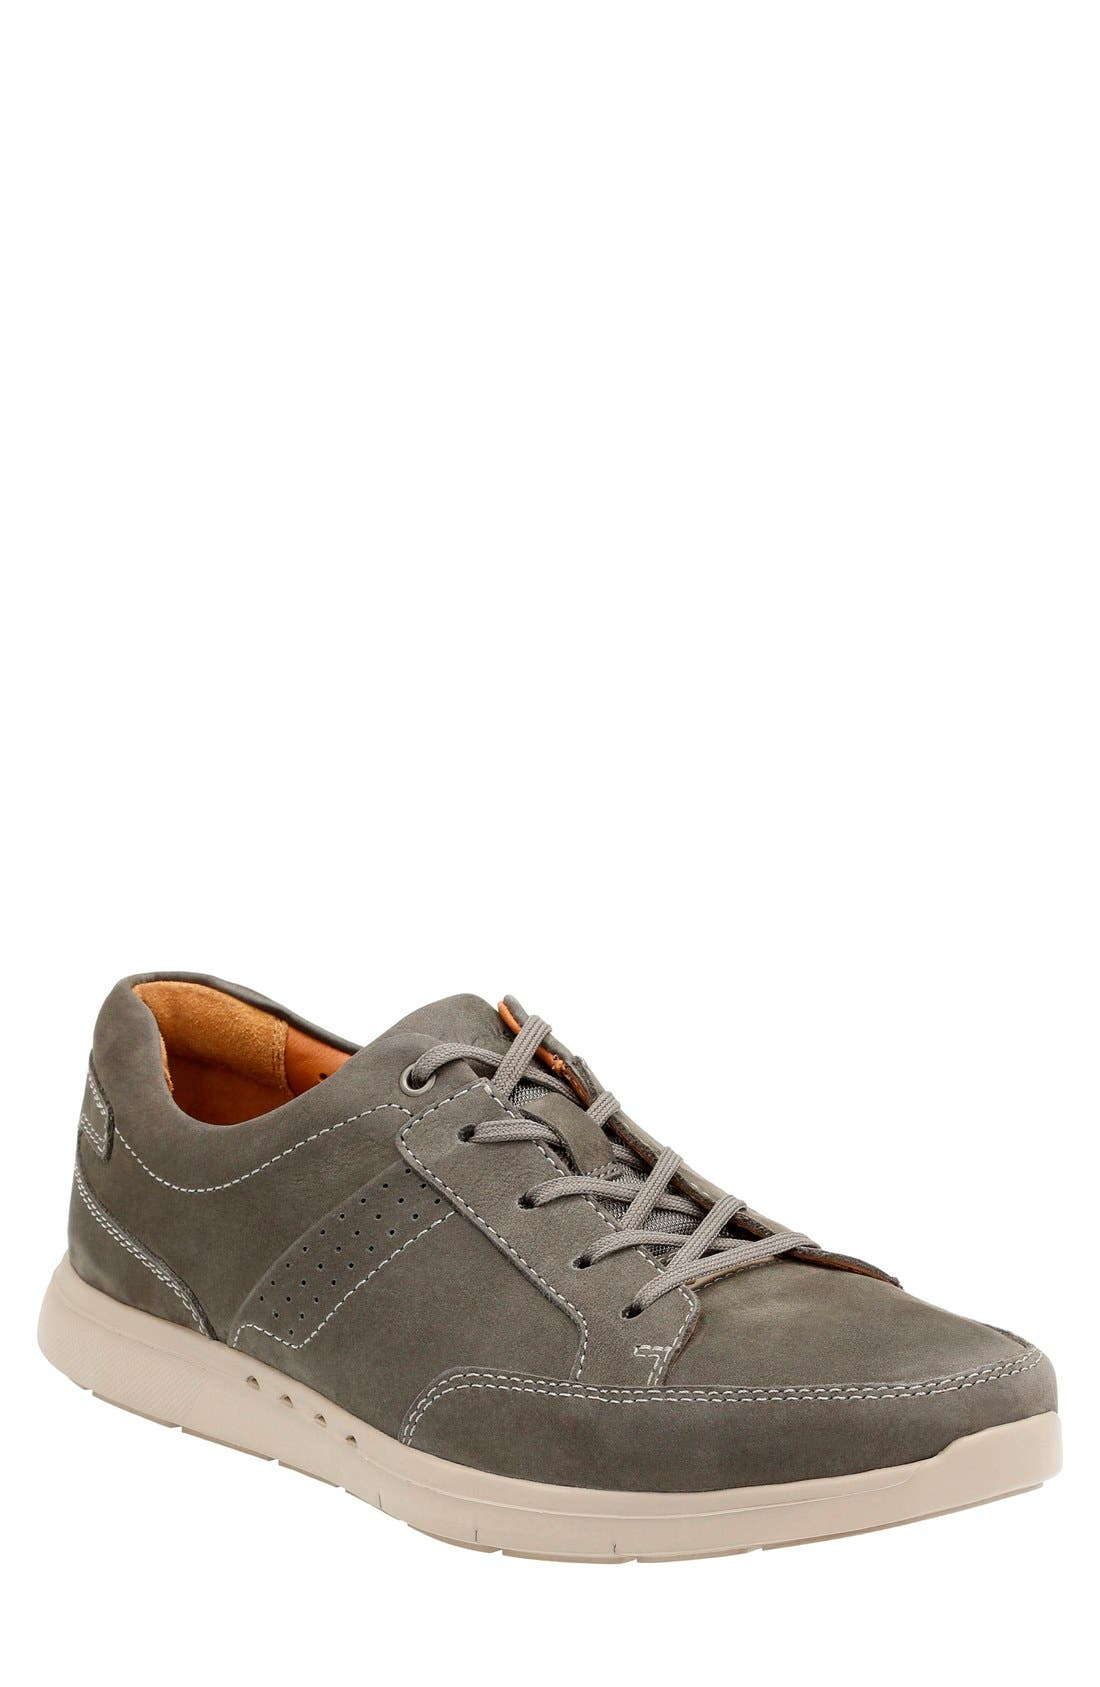 Main Image - Clarks® 'Unstructured - Lomac' Leather Sneaker (Men)